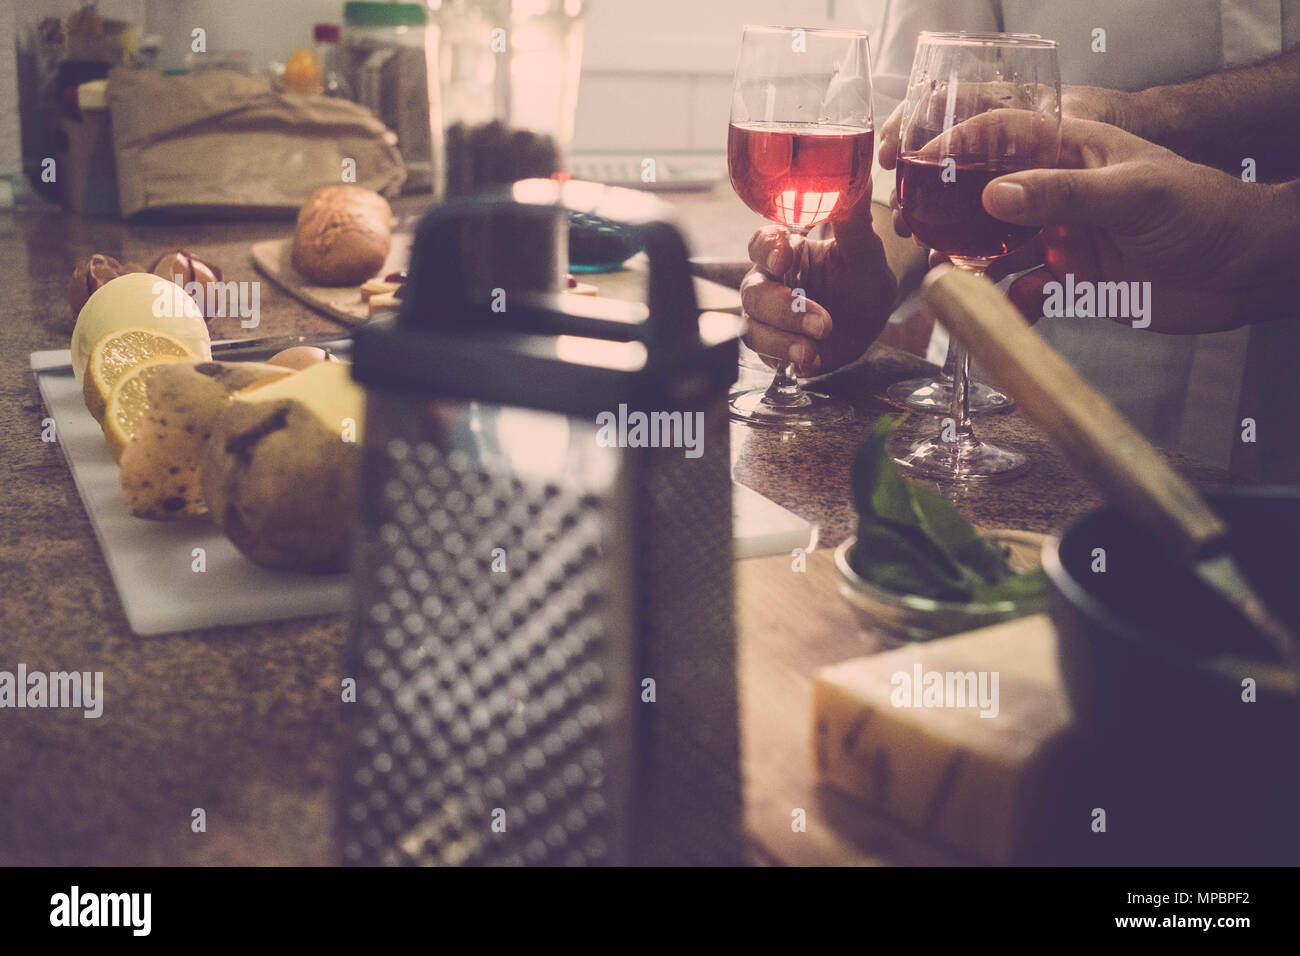 vintage filter for a cocktail home scene with three hands from two men and a woman at home. Domestic scene of usual life for a nice time together. - Stock Image